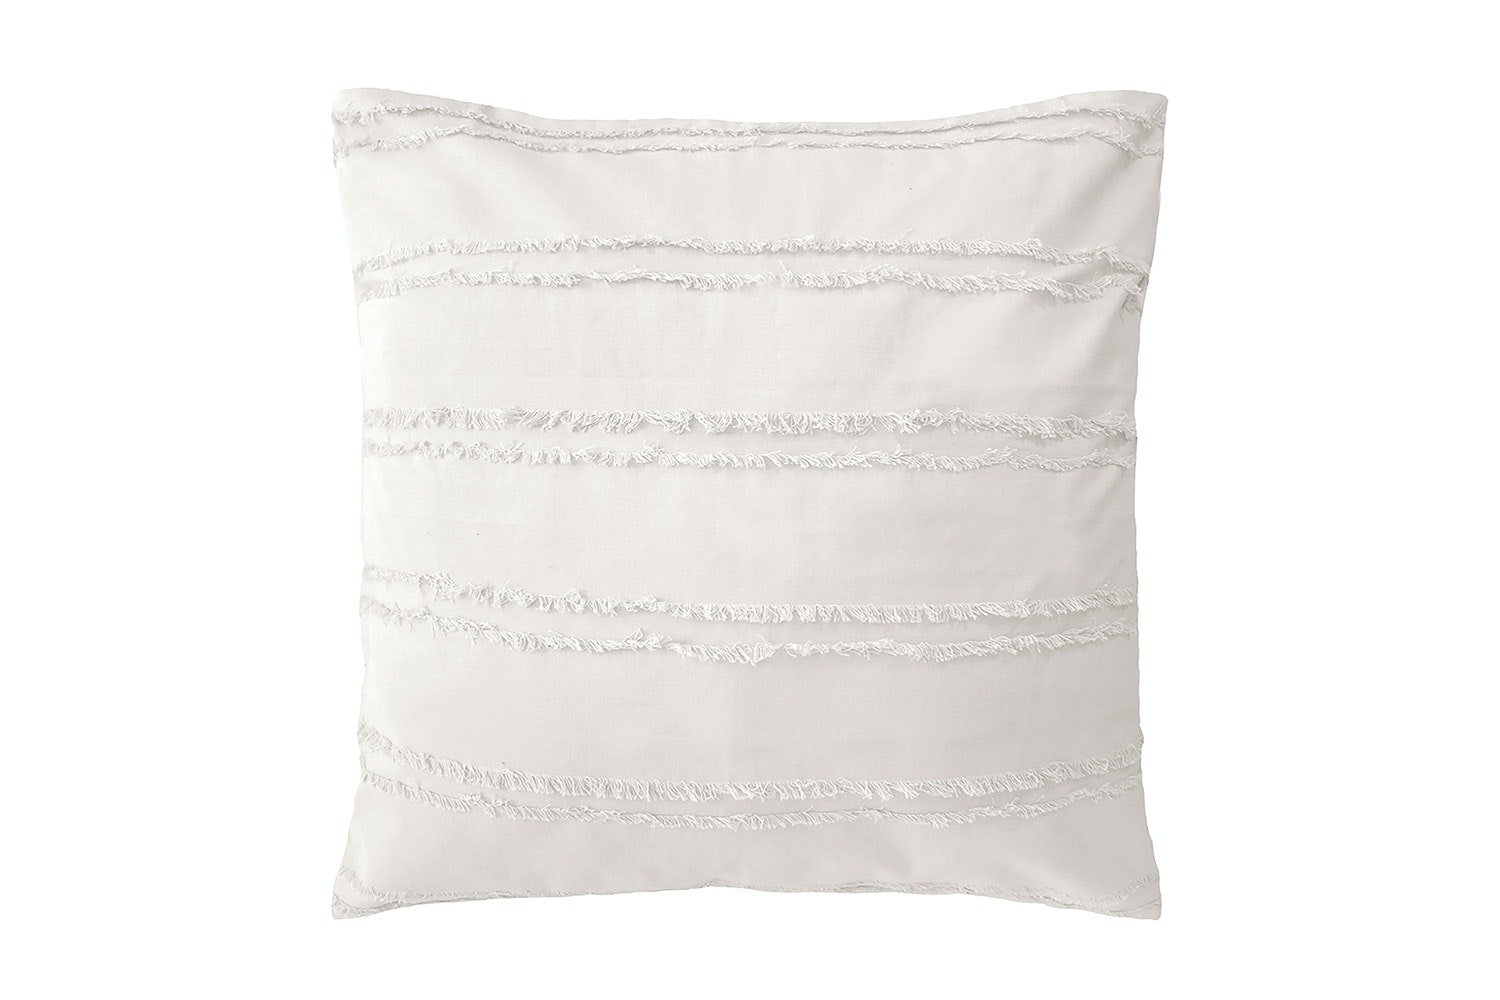 Kelso European Pillowcase by Bambury